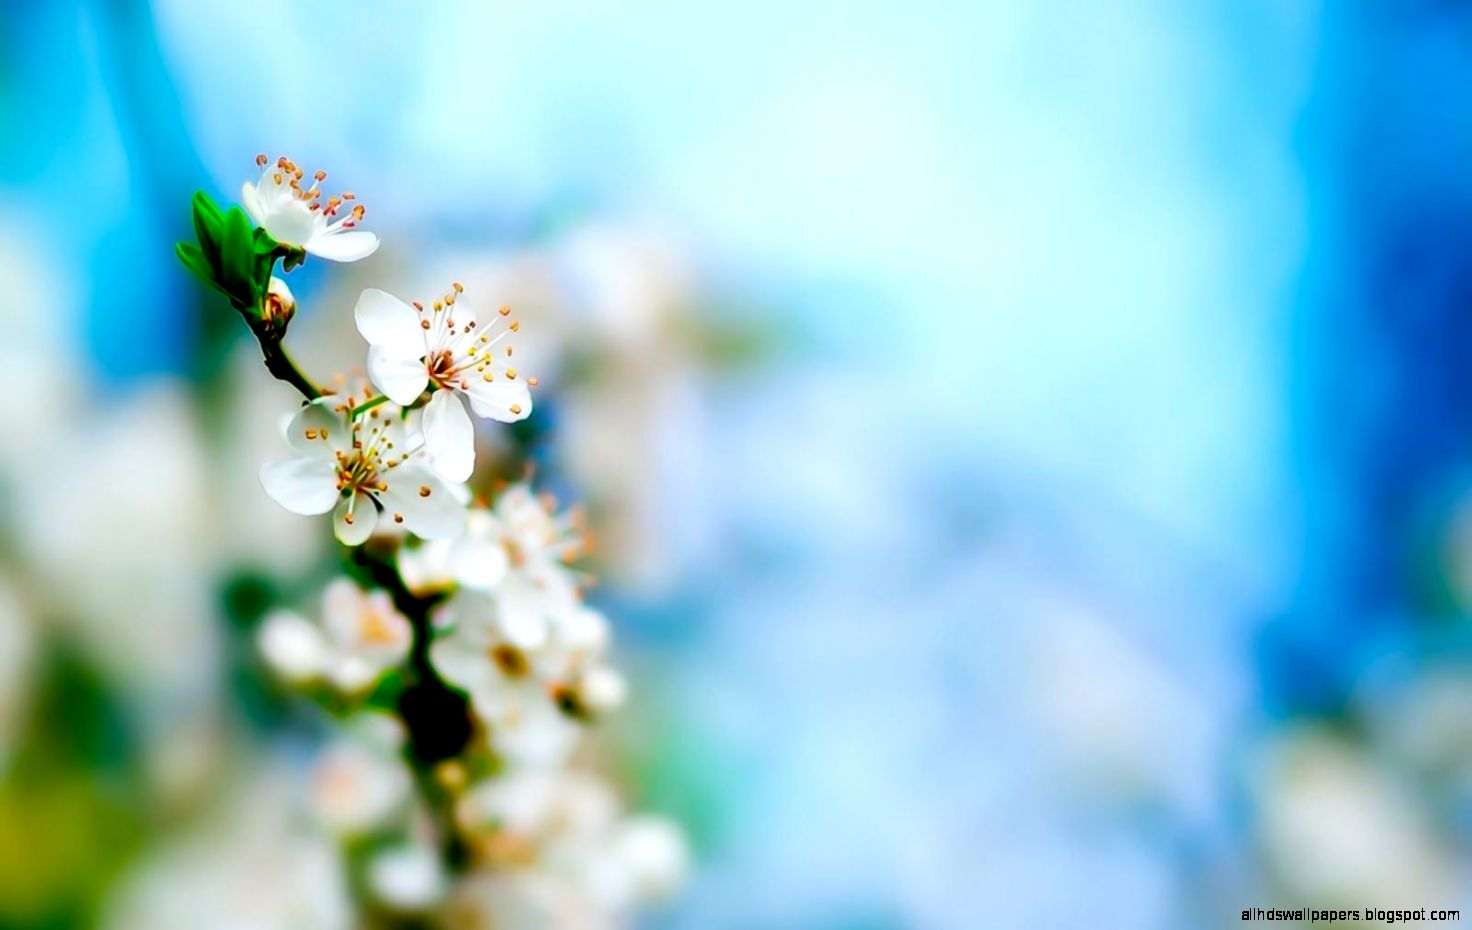 Spring flower background pictures all hd wallpapers view original size mightylinksfo